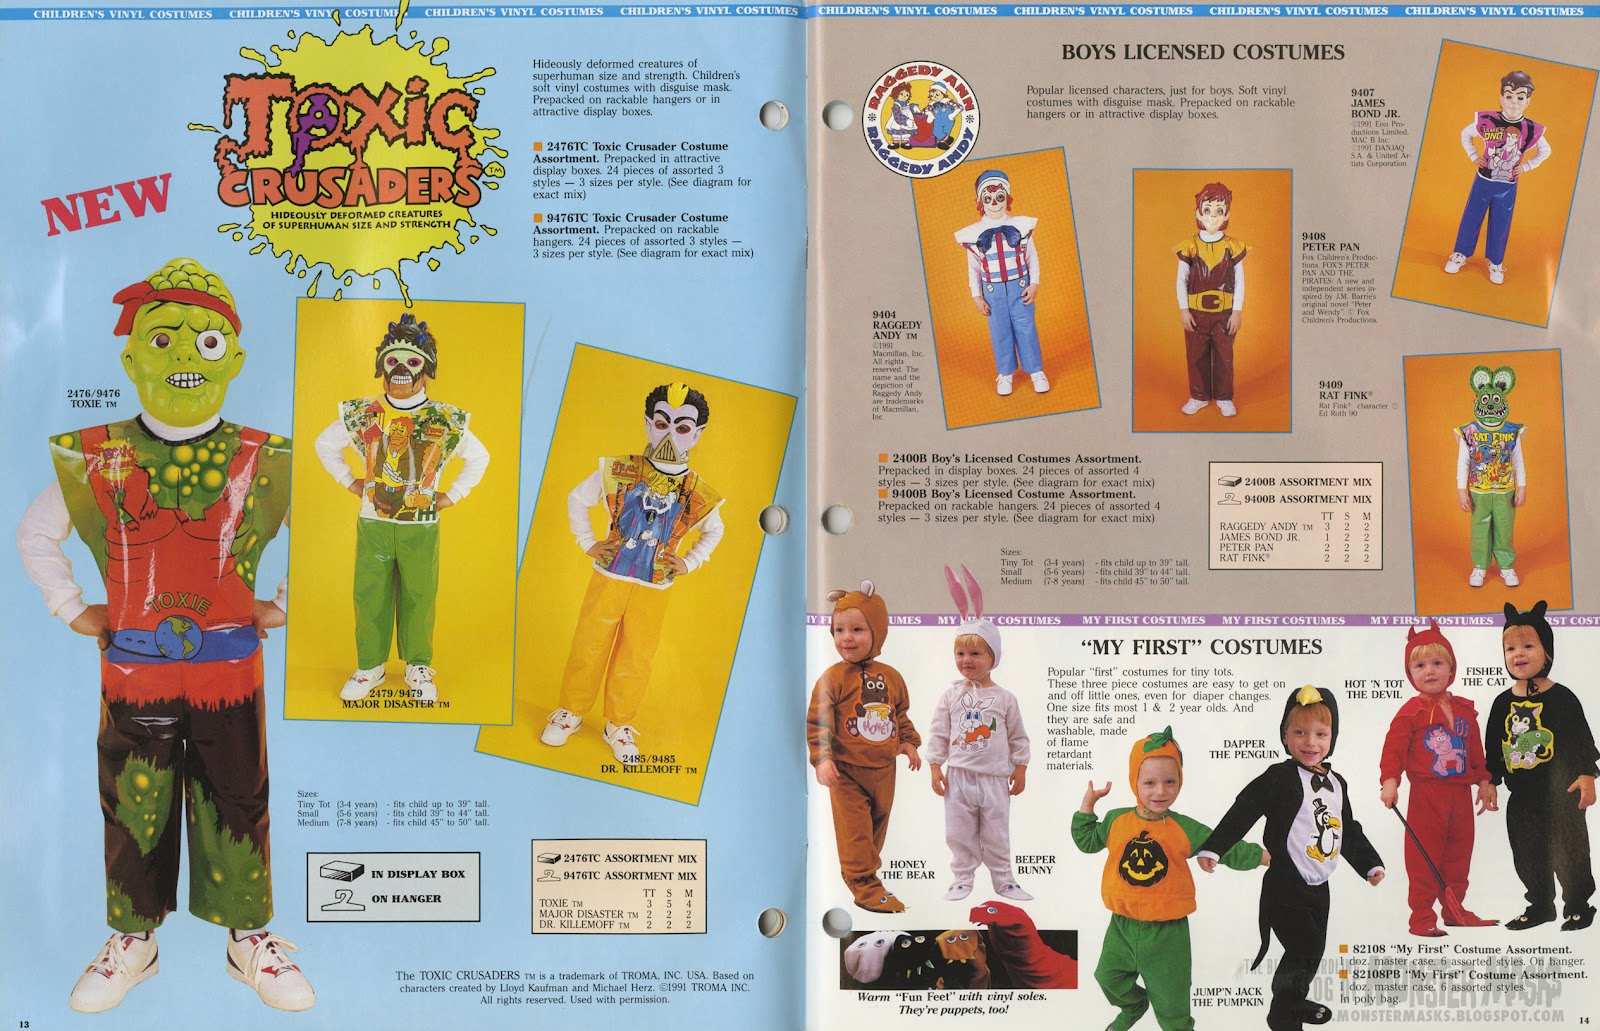 there is something very reassuring about the fact that there were still some pretty cool classic plastic halloween costumes available to kids in